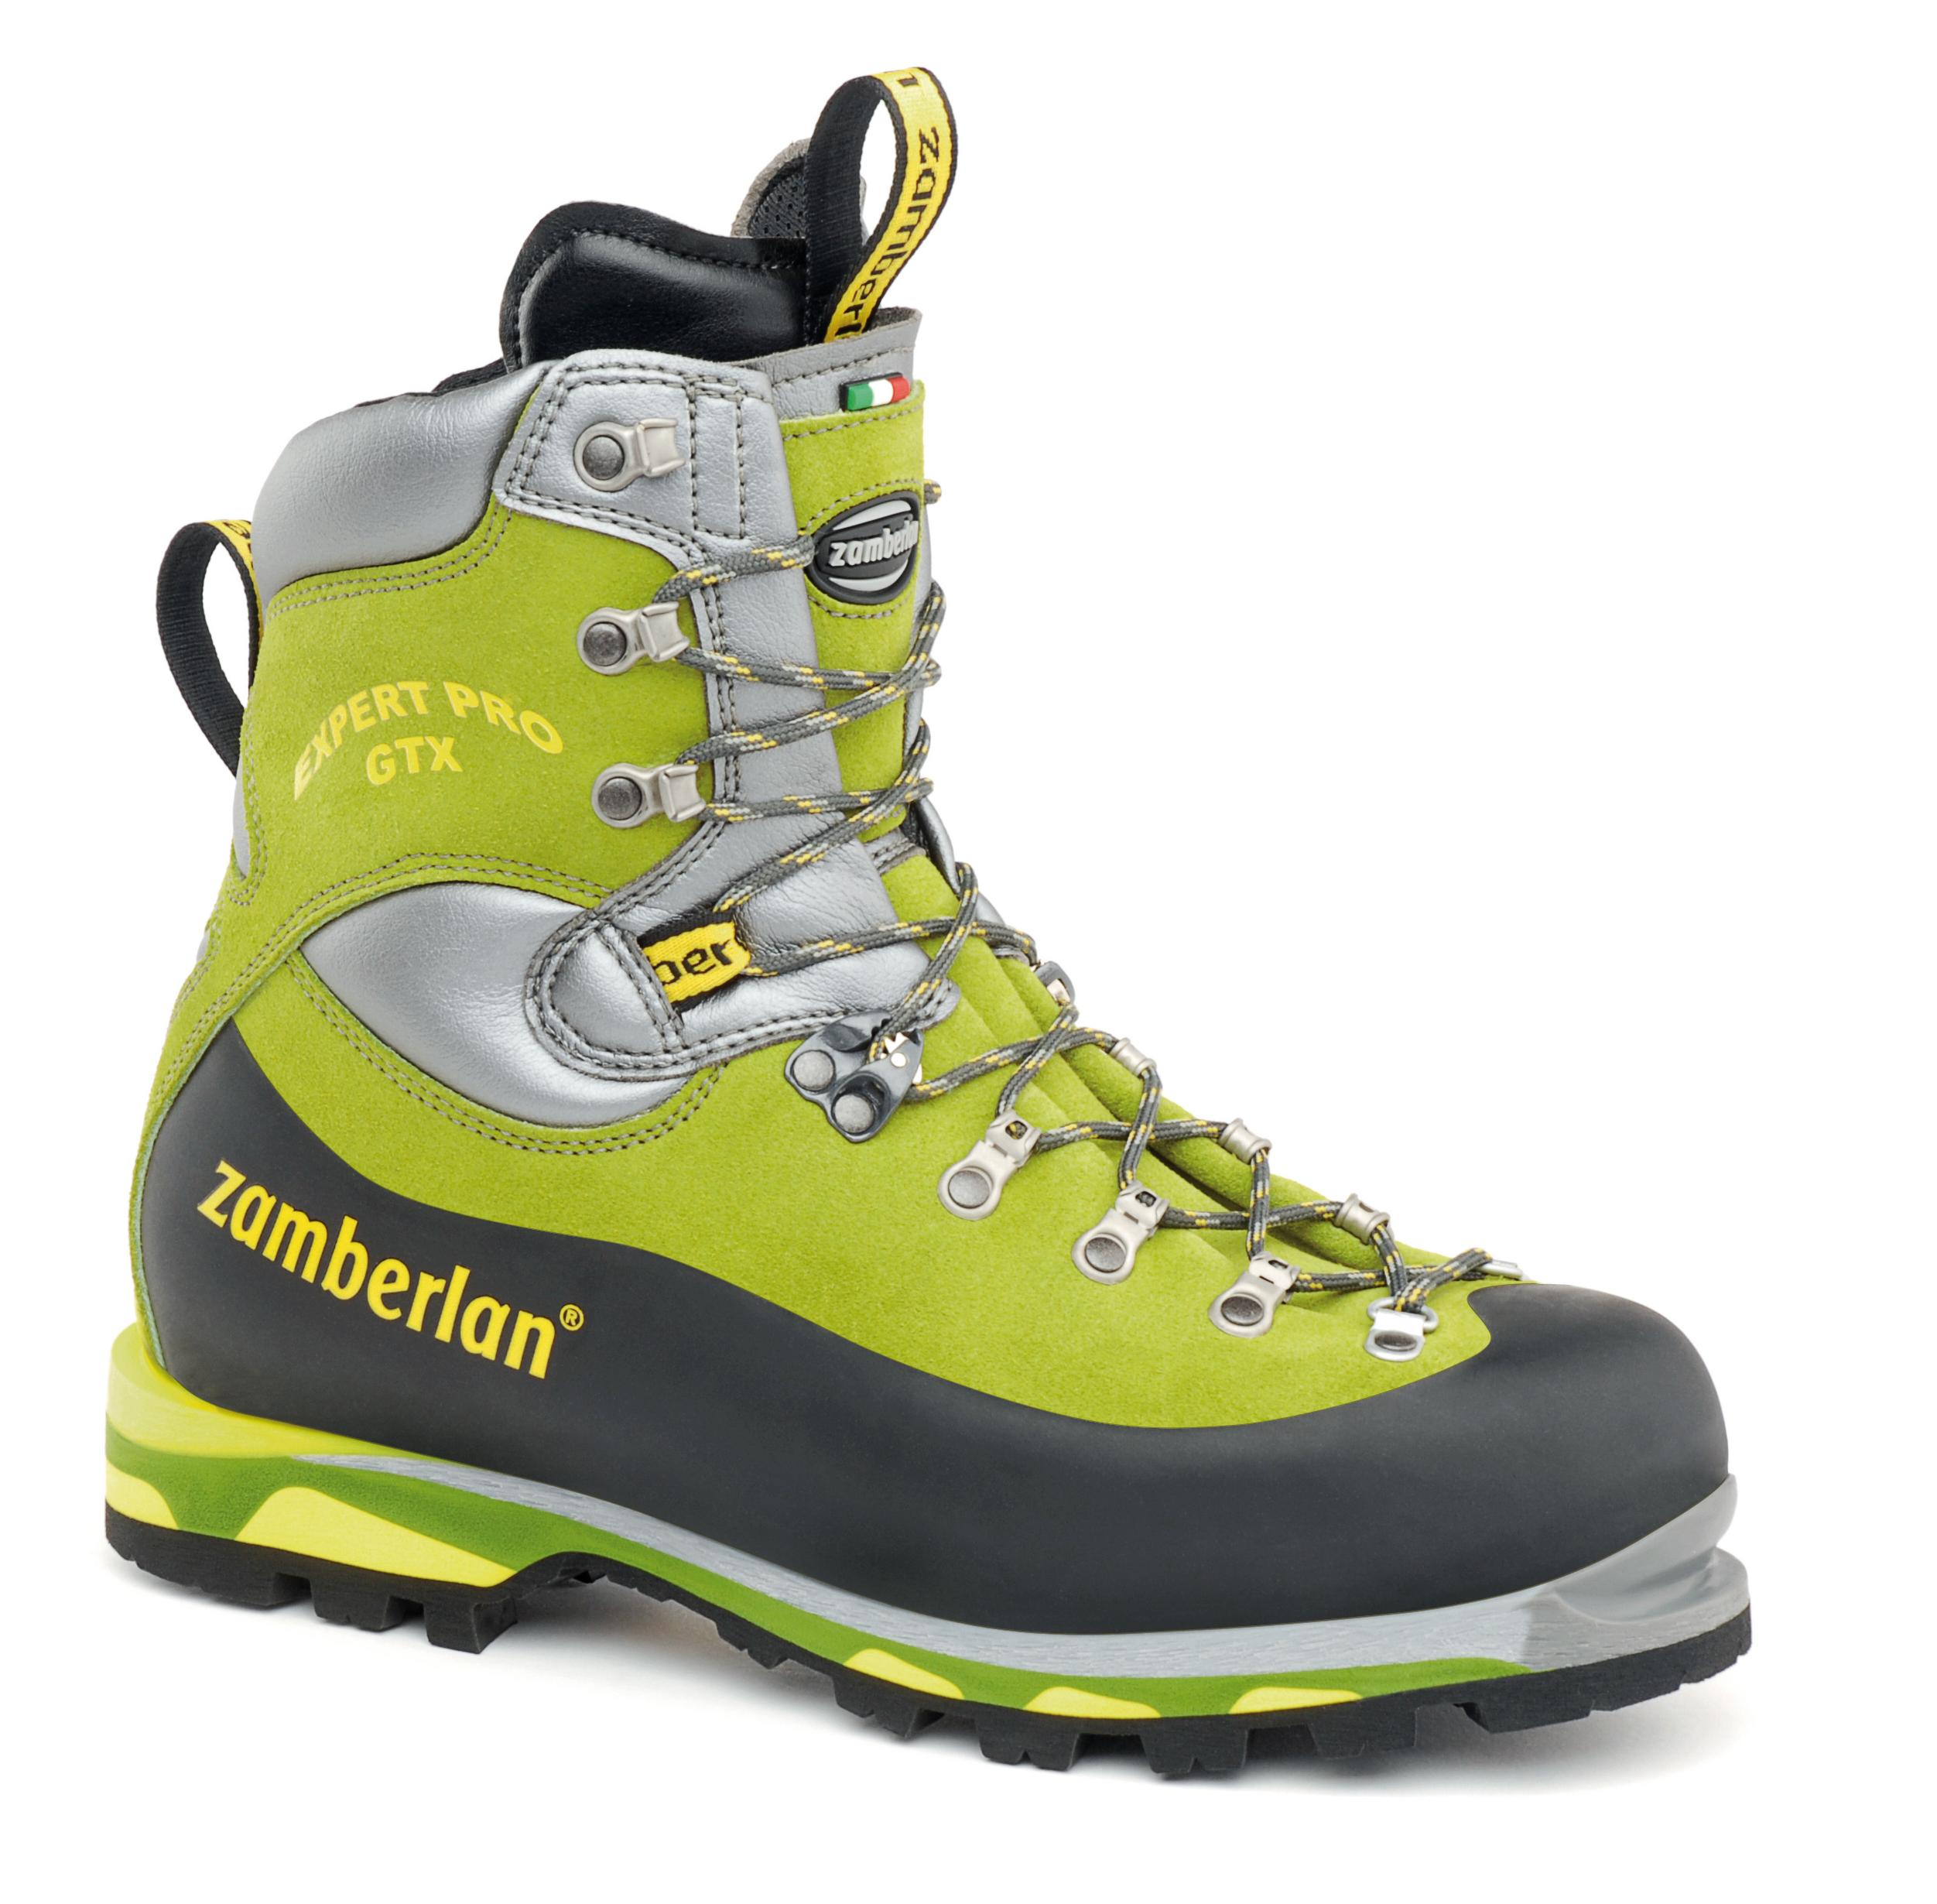 4041 NEW EXPERT PRO GTX® RR   -   Mountaineering  Boots   -   Acid Green